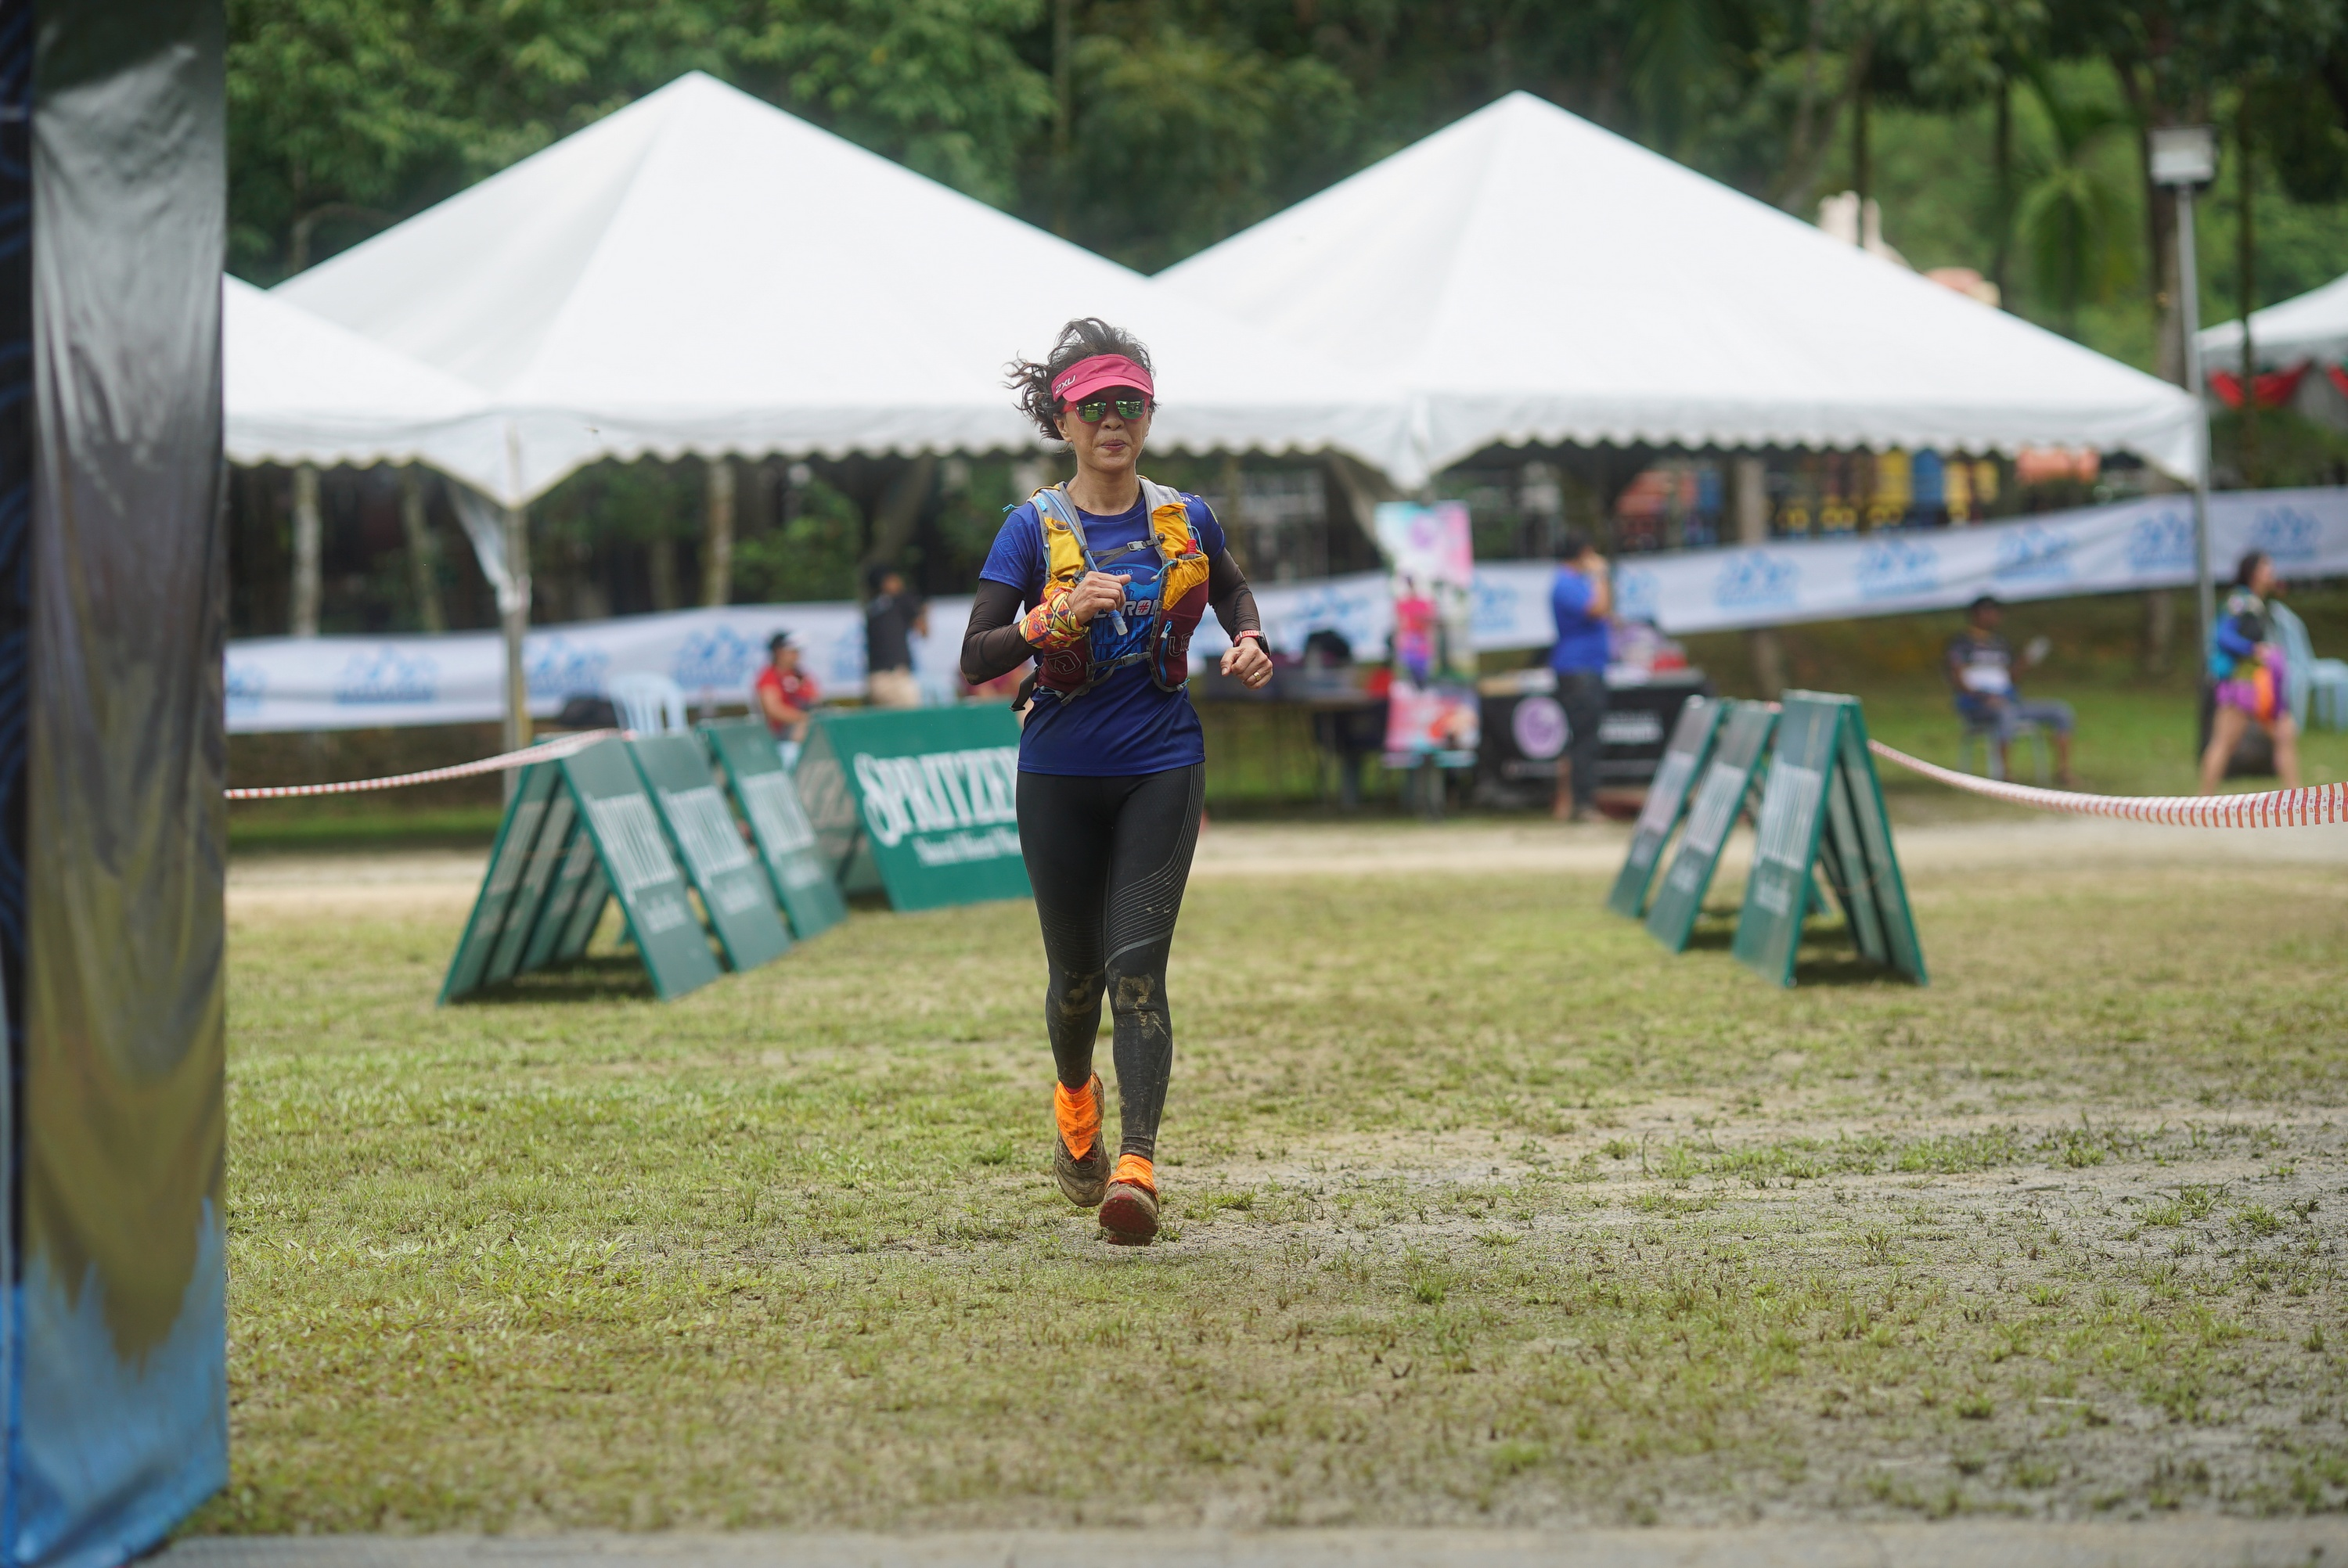 6) MMTF 2018 - Claris Loke still going strong and running towards the finish line